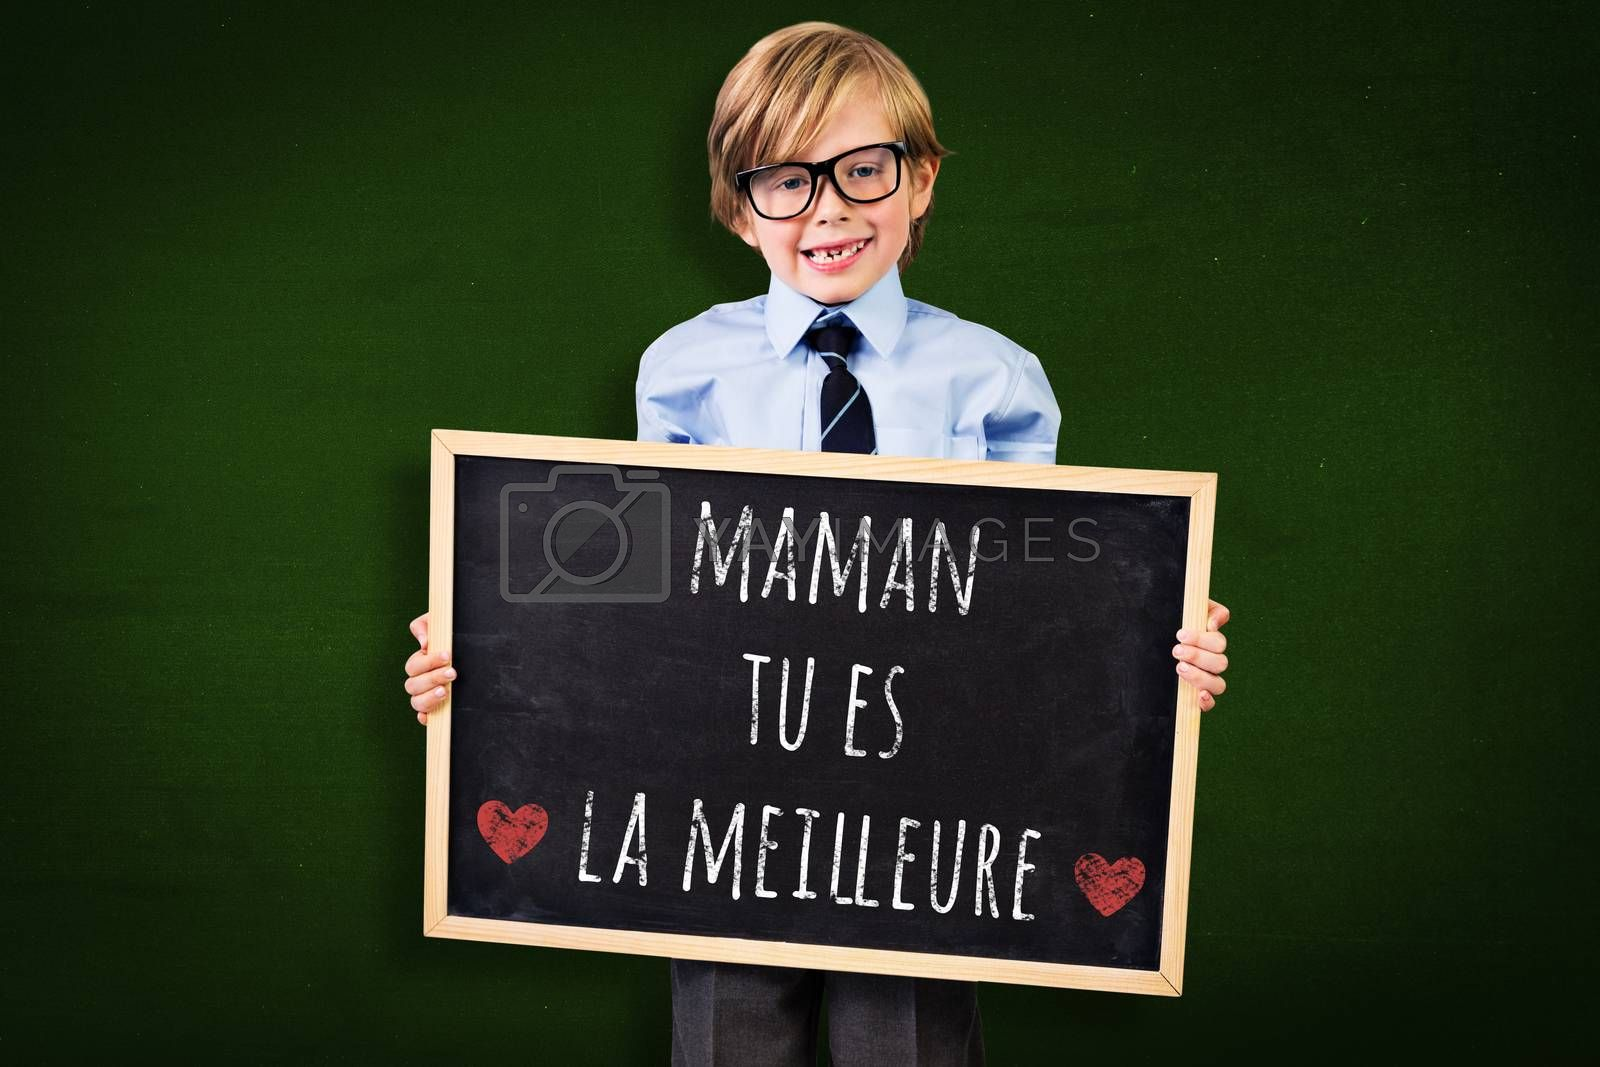 Cute pupil holding chalkboard against green